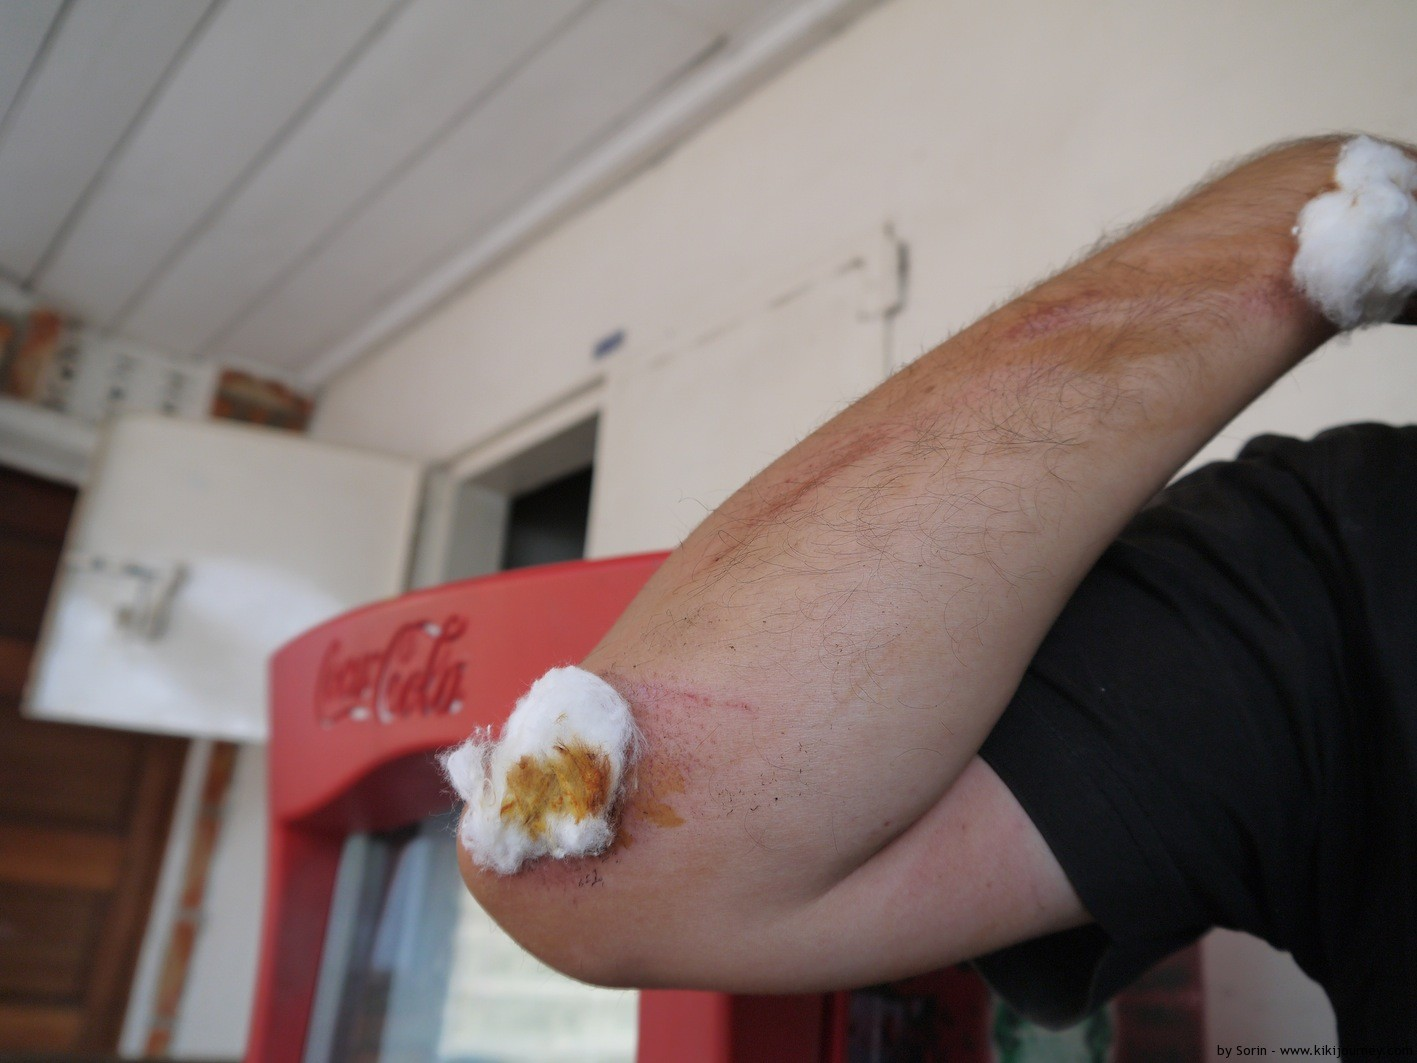 wounded arm